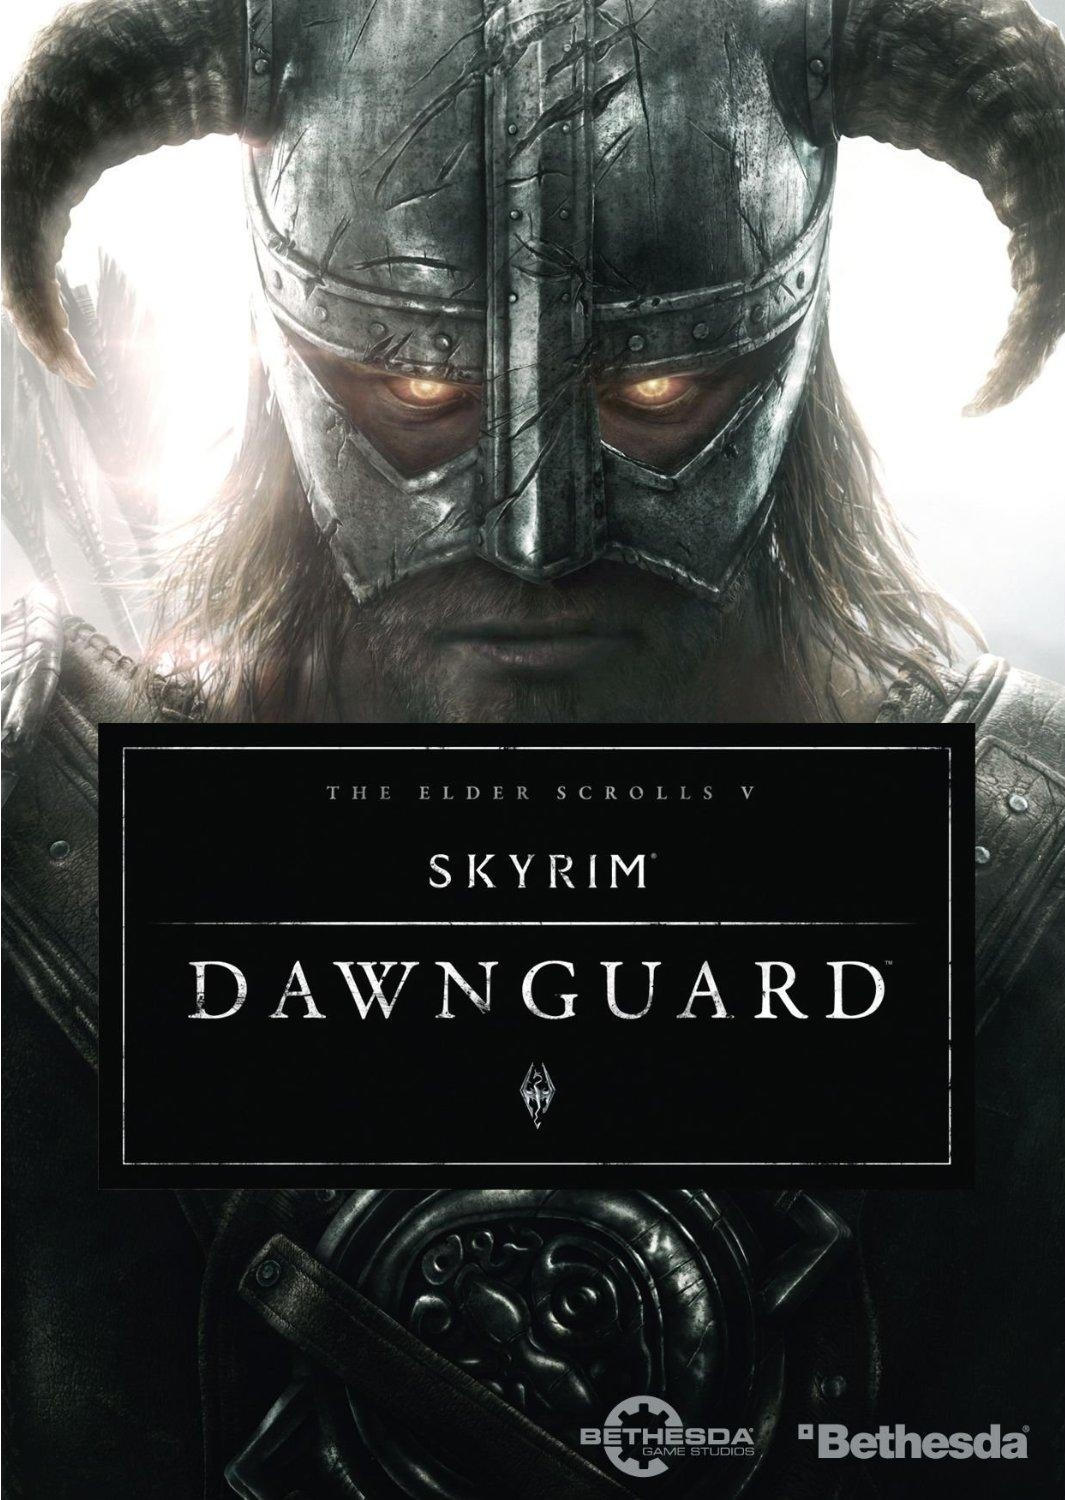 The elder scrolls v skyrim dawnguard download elder-scrolls. Org.